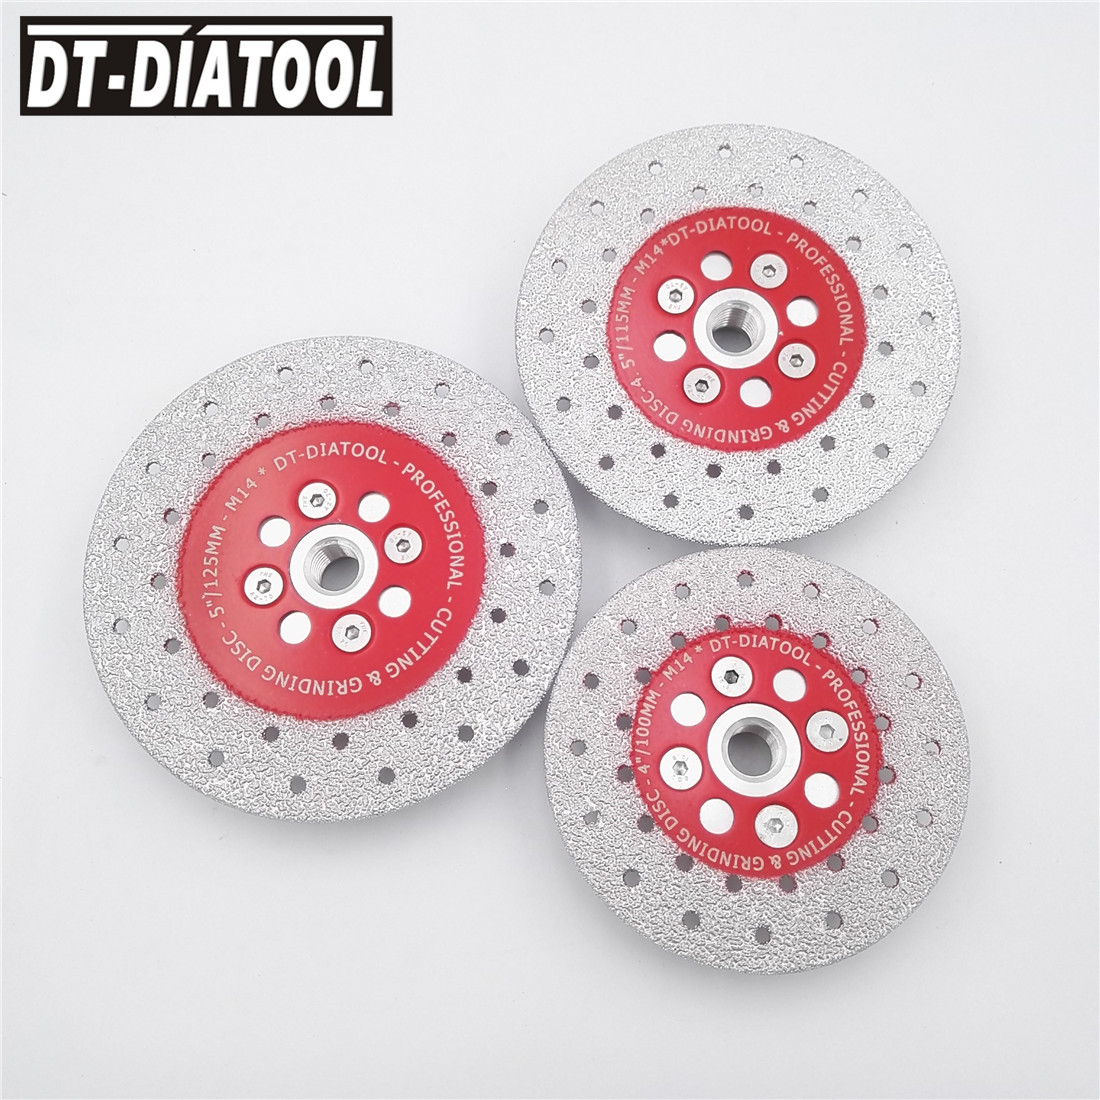 #40/50 Vacuum Brazed Double Side Coated Diamond Grinding Disc for Grinder Cutting wheel saw blade shaping for marble concrete 100mm brazing cutting piece diamond grinding bowl marble grinding wheel angle grinder saw blade ceramic stone grinding